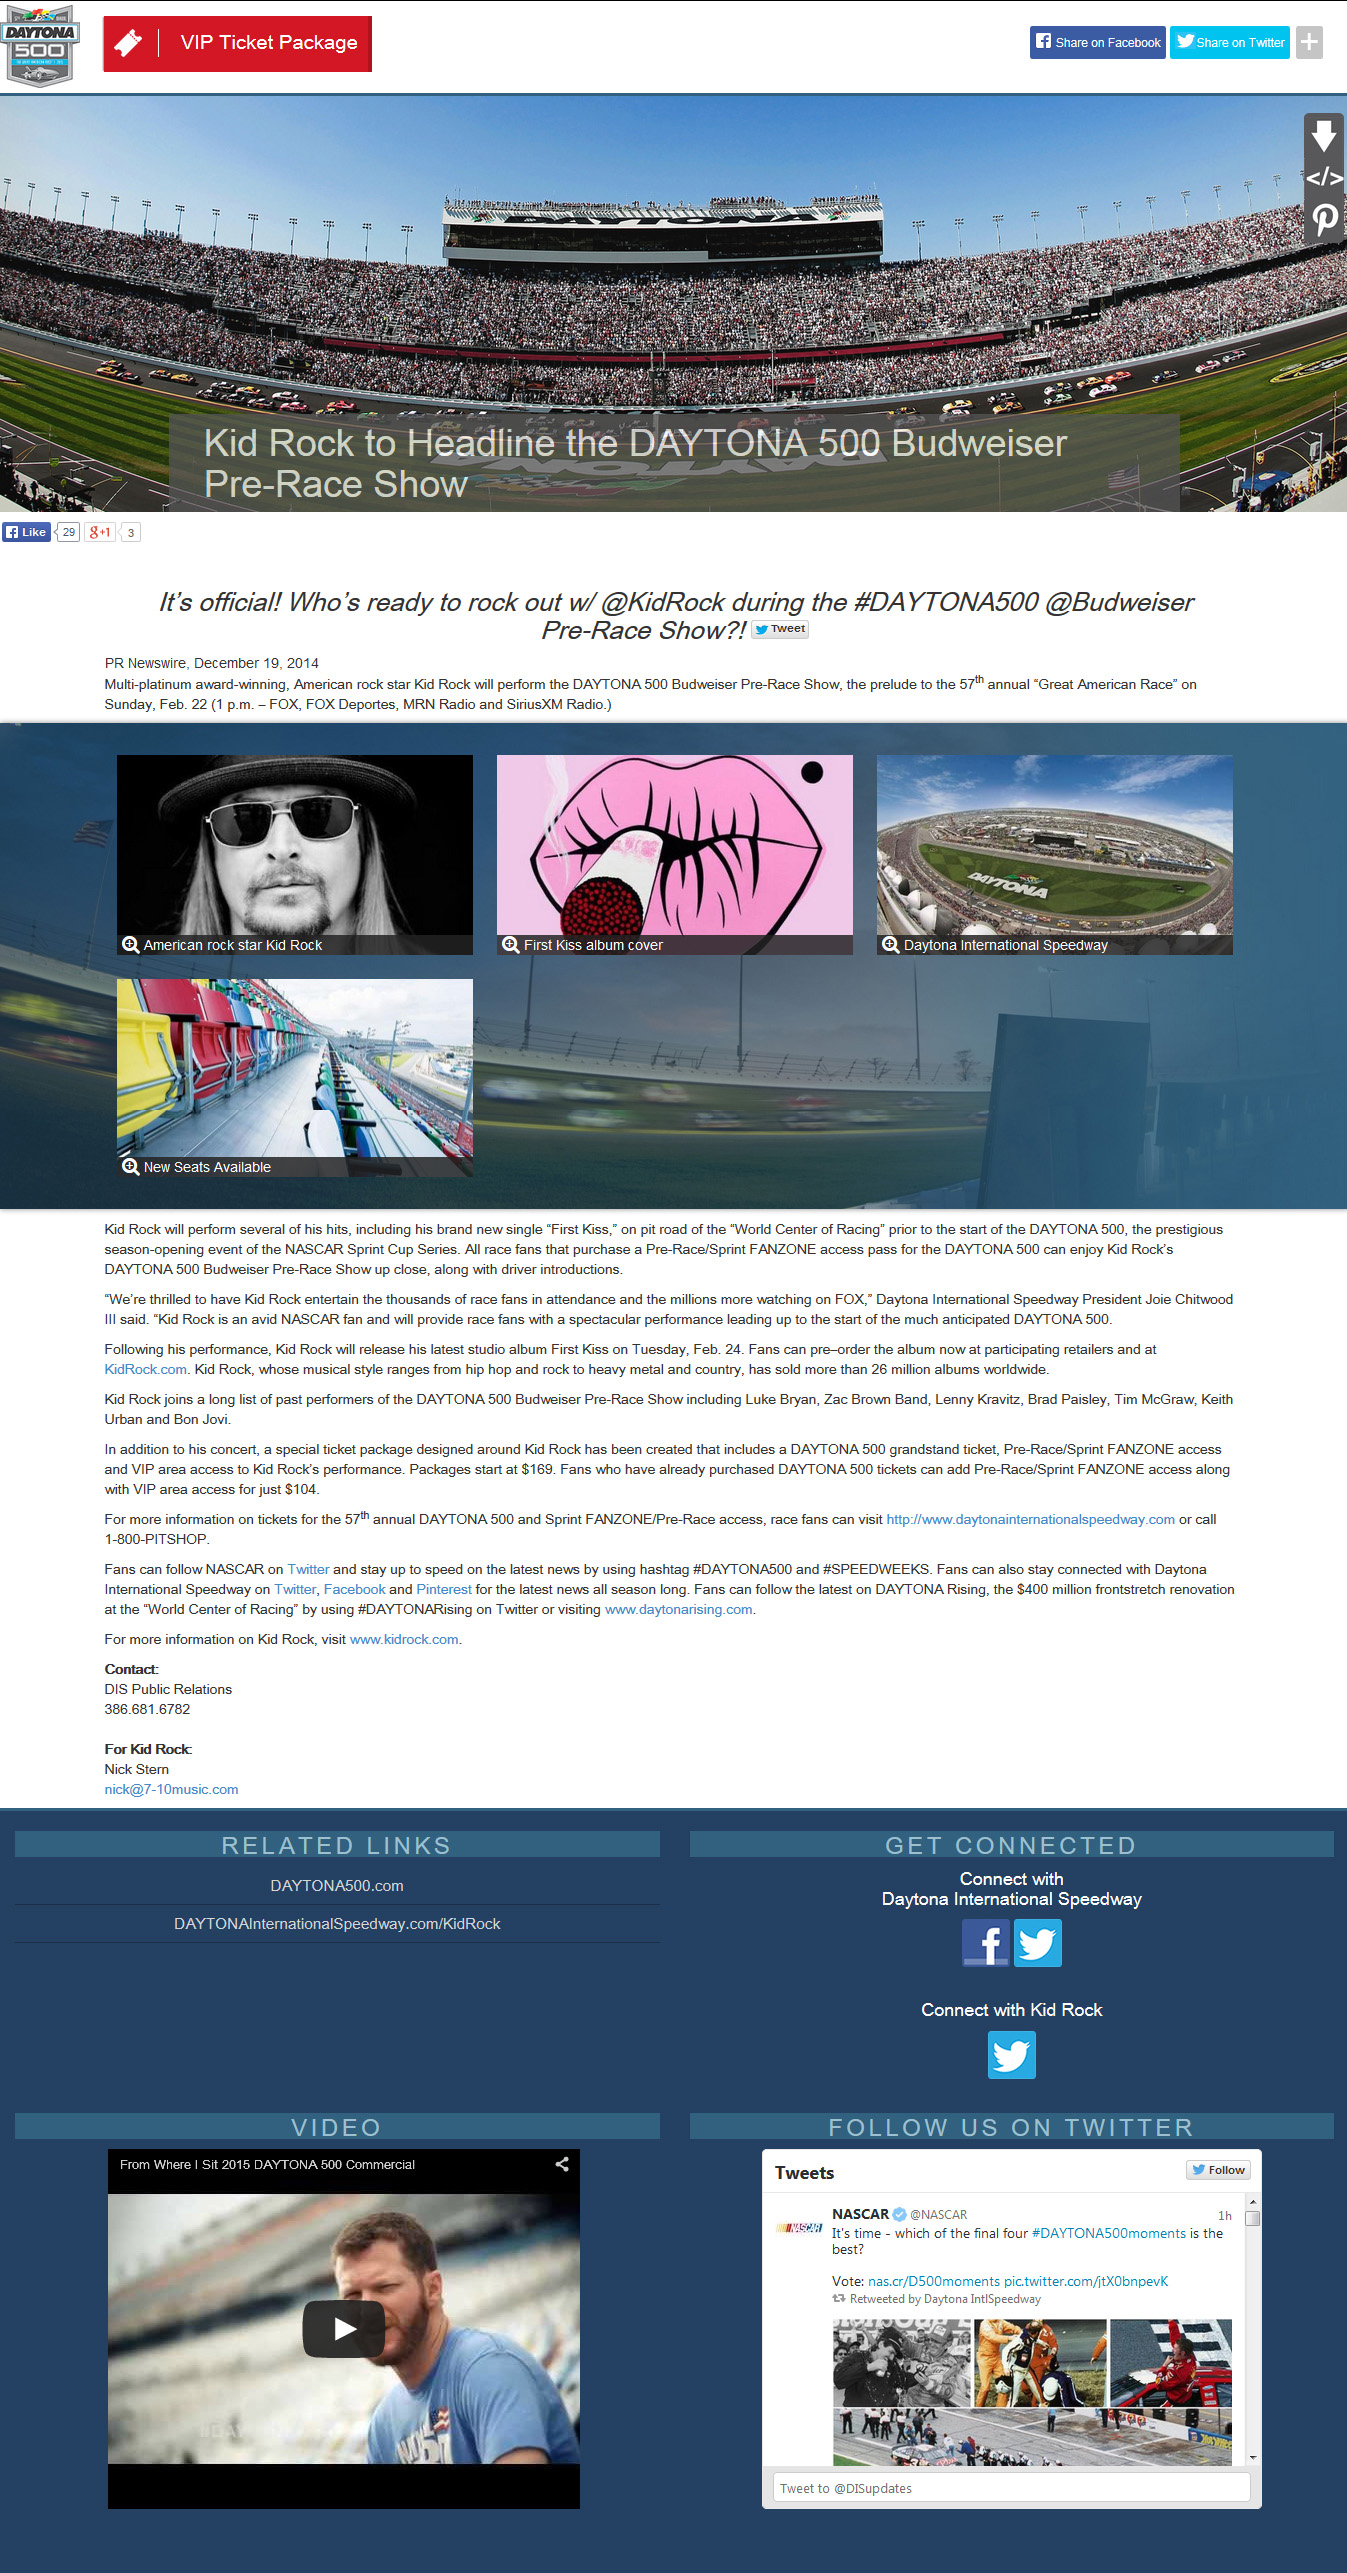 Daytona 500 promotes a headlining performance by Kid Rock using the newest Multimedia News Release design